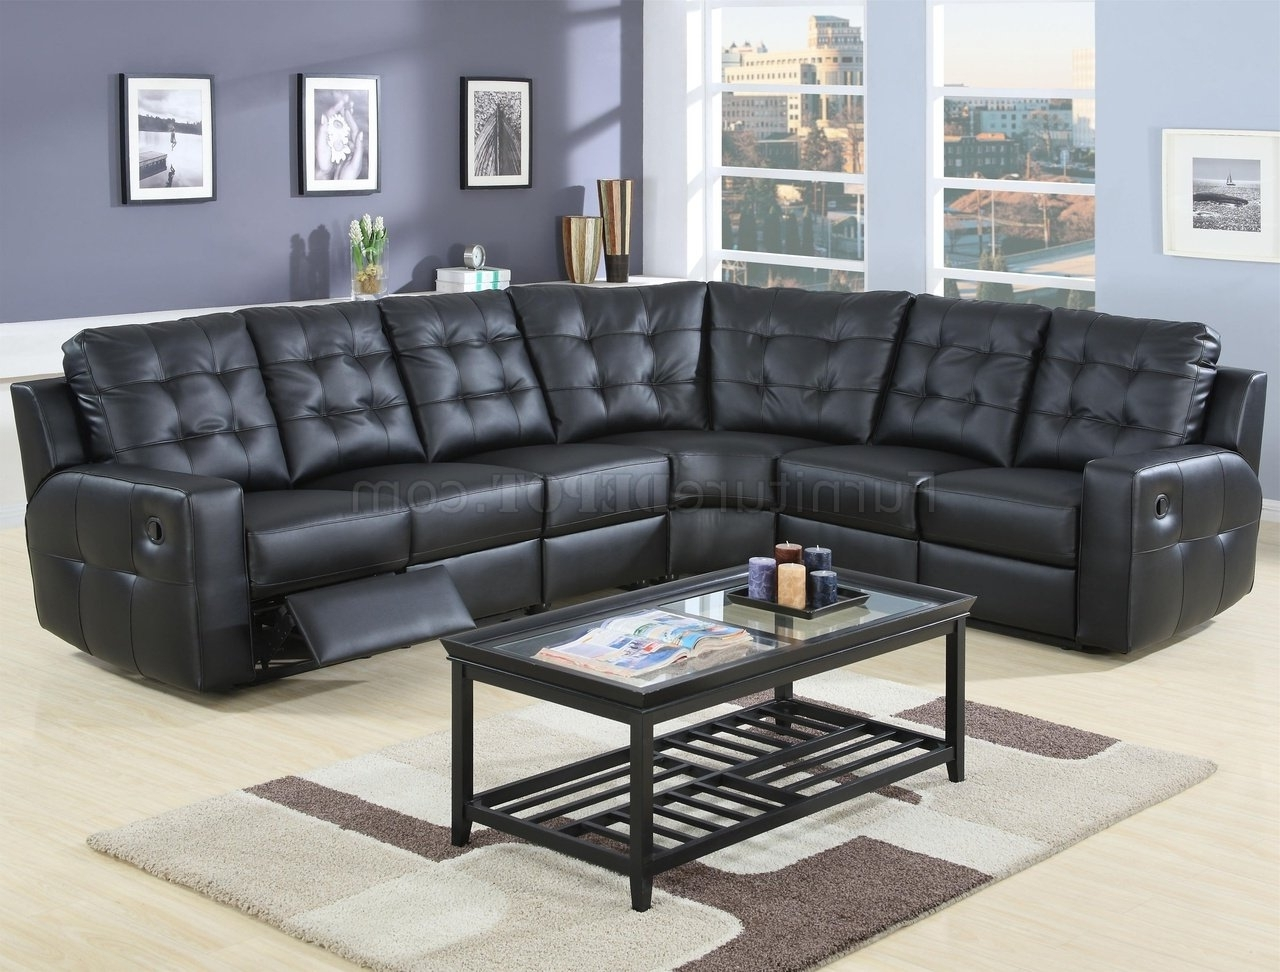 Famous Leather Motion Sectional Sofas For Modern Leather Double Reclining Sectional Sofa 600315 Black (View 4 of 15)